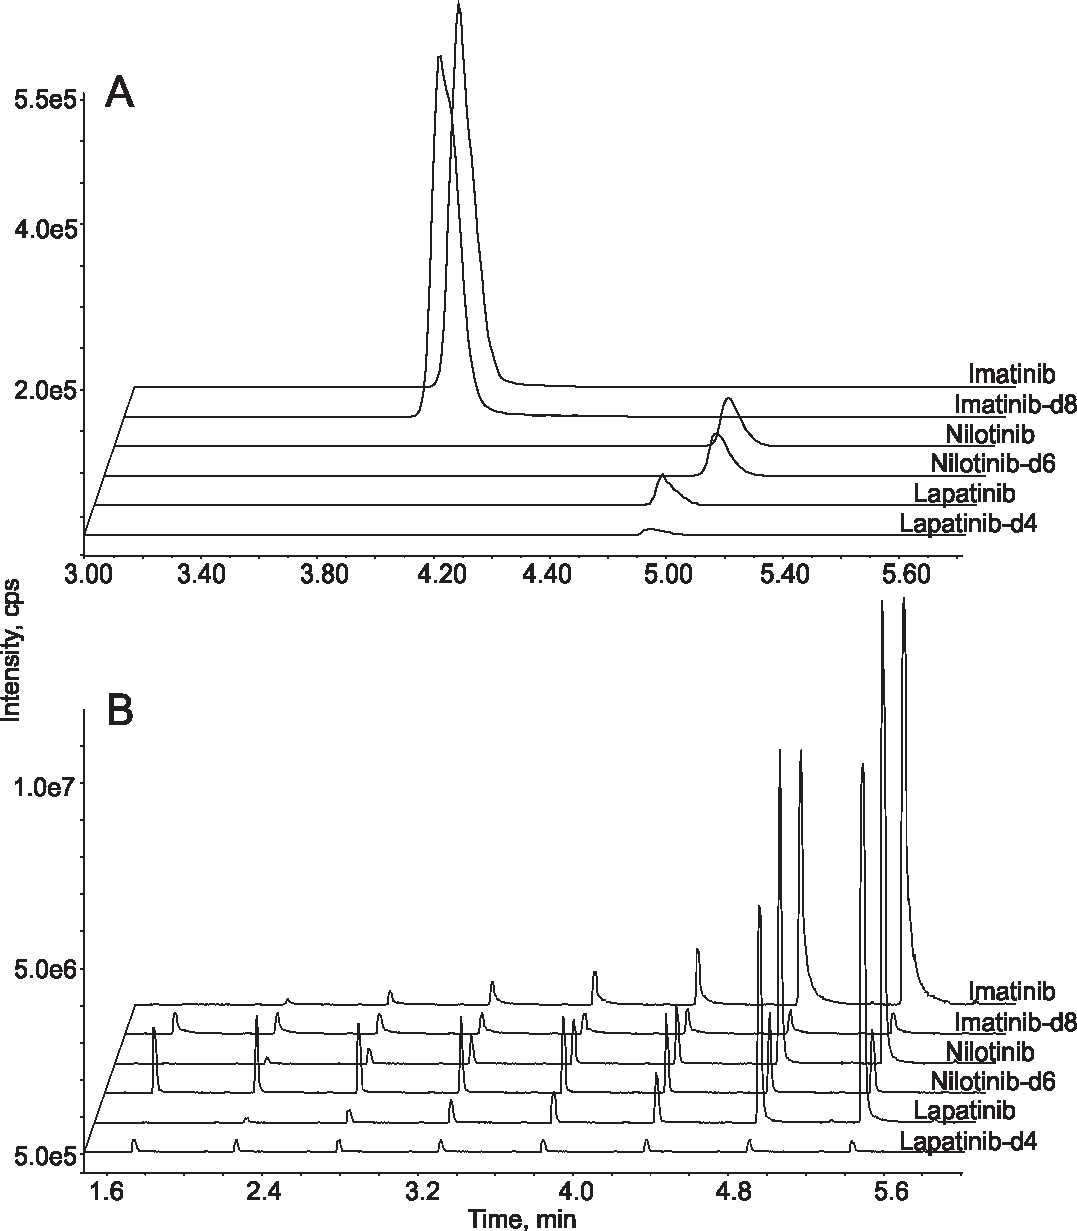 Comparison between LC-MS/MS and online SPE-MS/MS. Extracted ion chromatograms from the analysis of standard